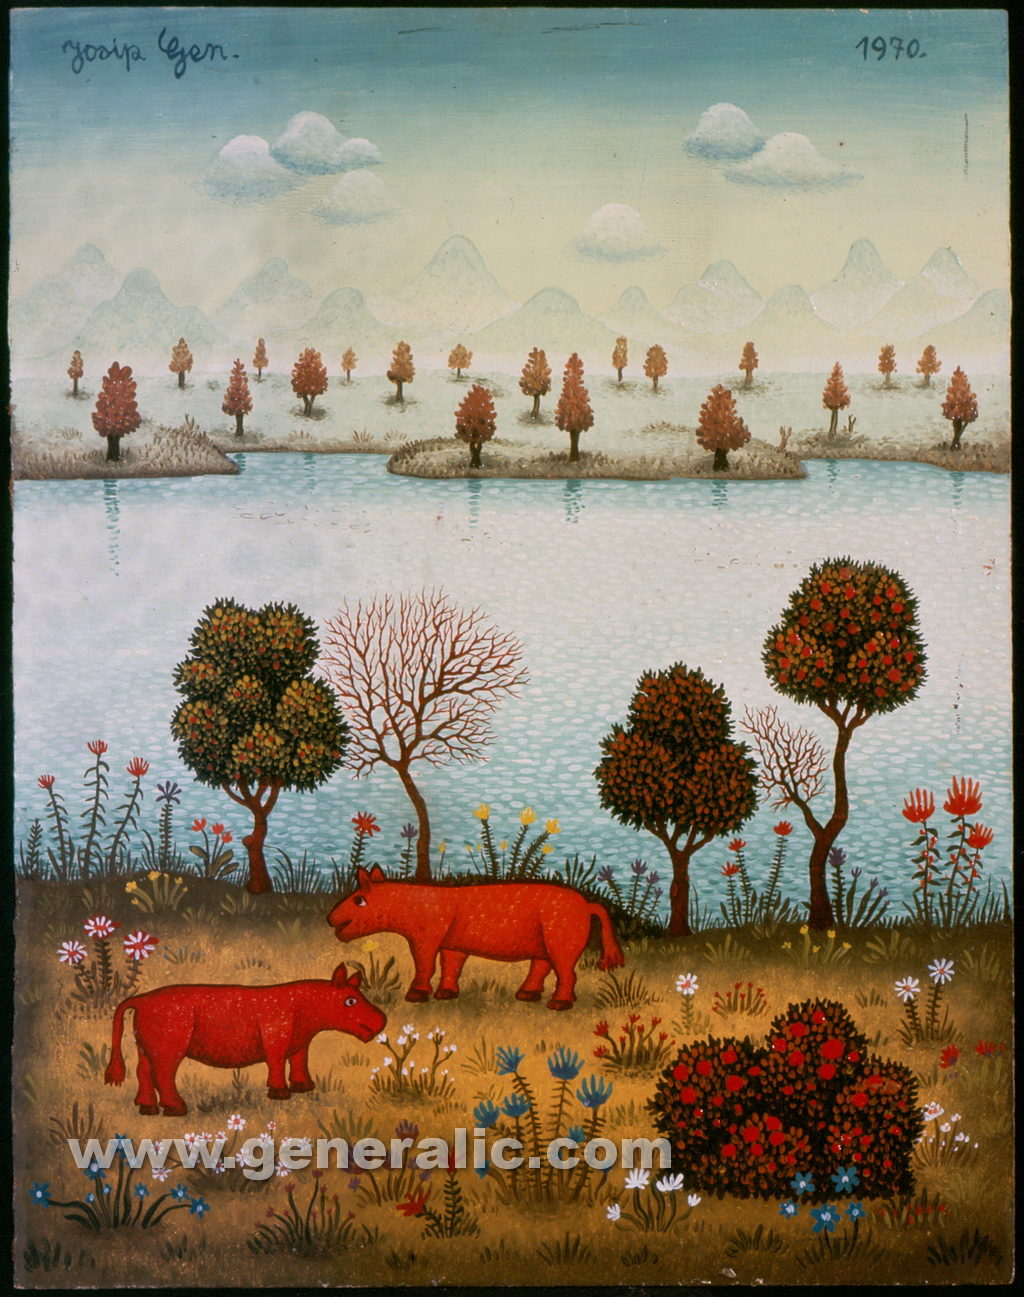 Josip Generalic, 1970, Two red animals, oil on canvas